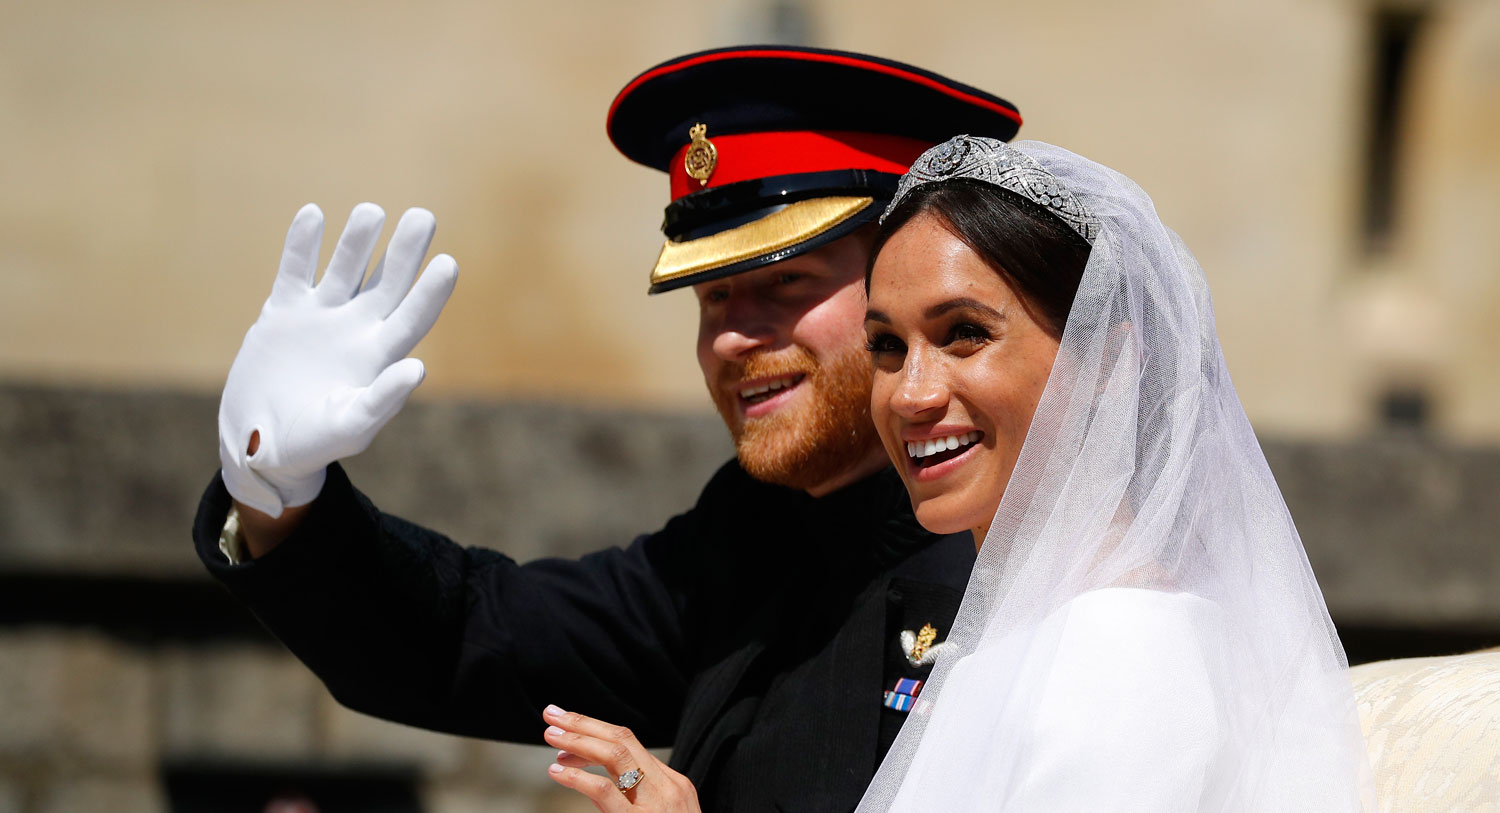 Thomas Markle Just Revealed Meghan Markles Baby Making Plan to the Entire World